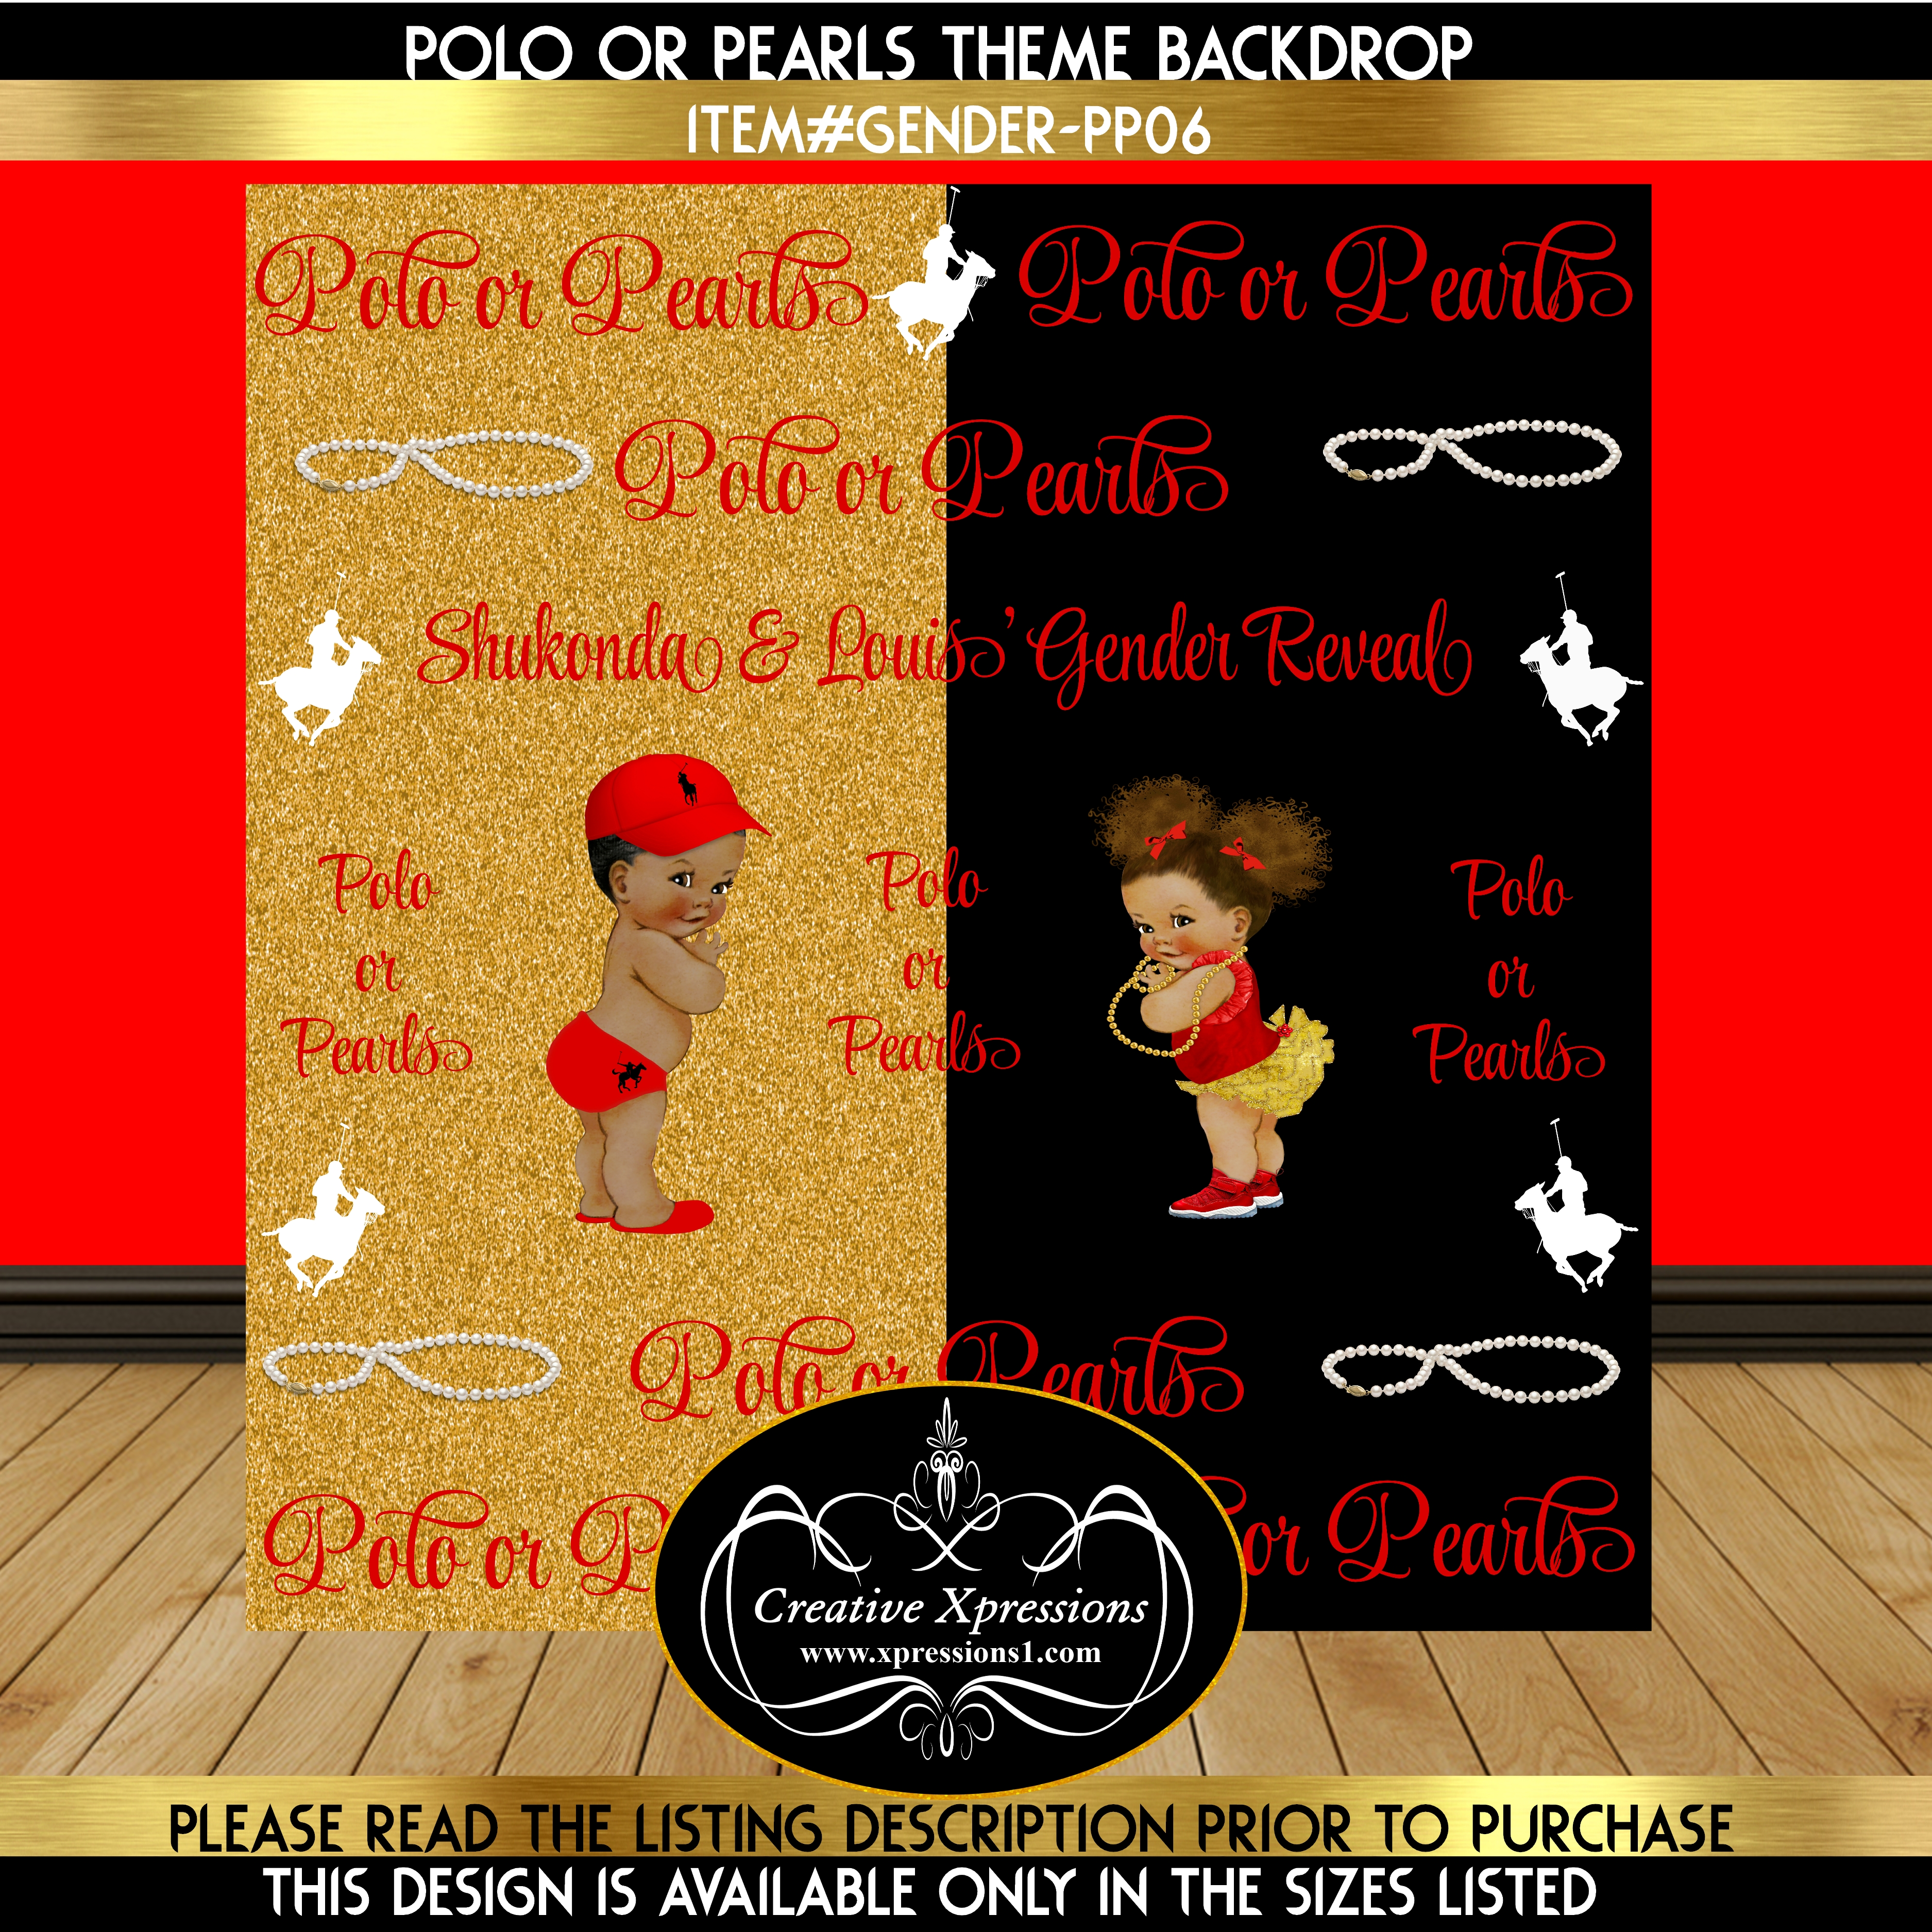 Red or Black Polo or Pearls Gender Reveal Backdrop